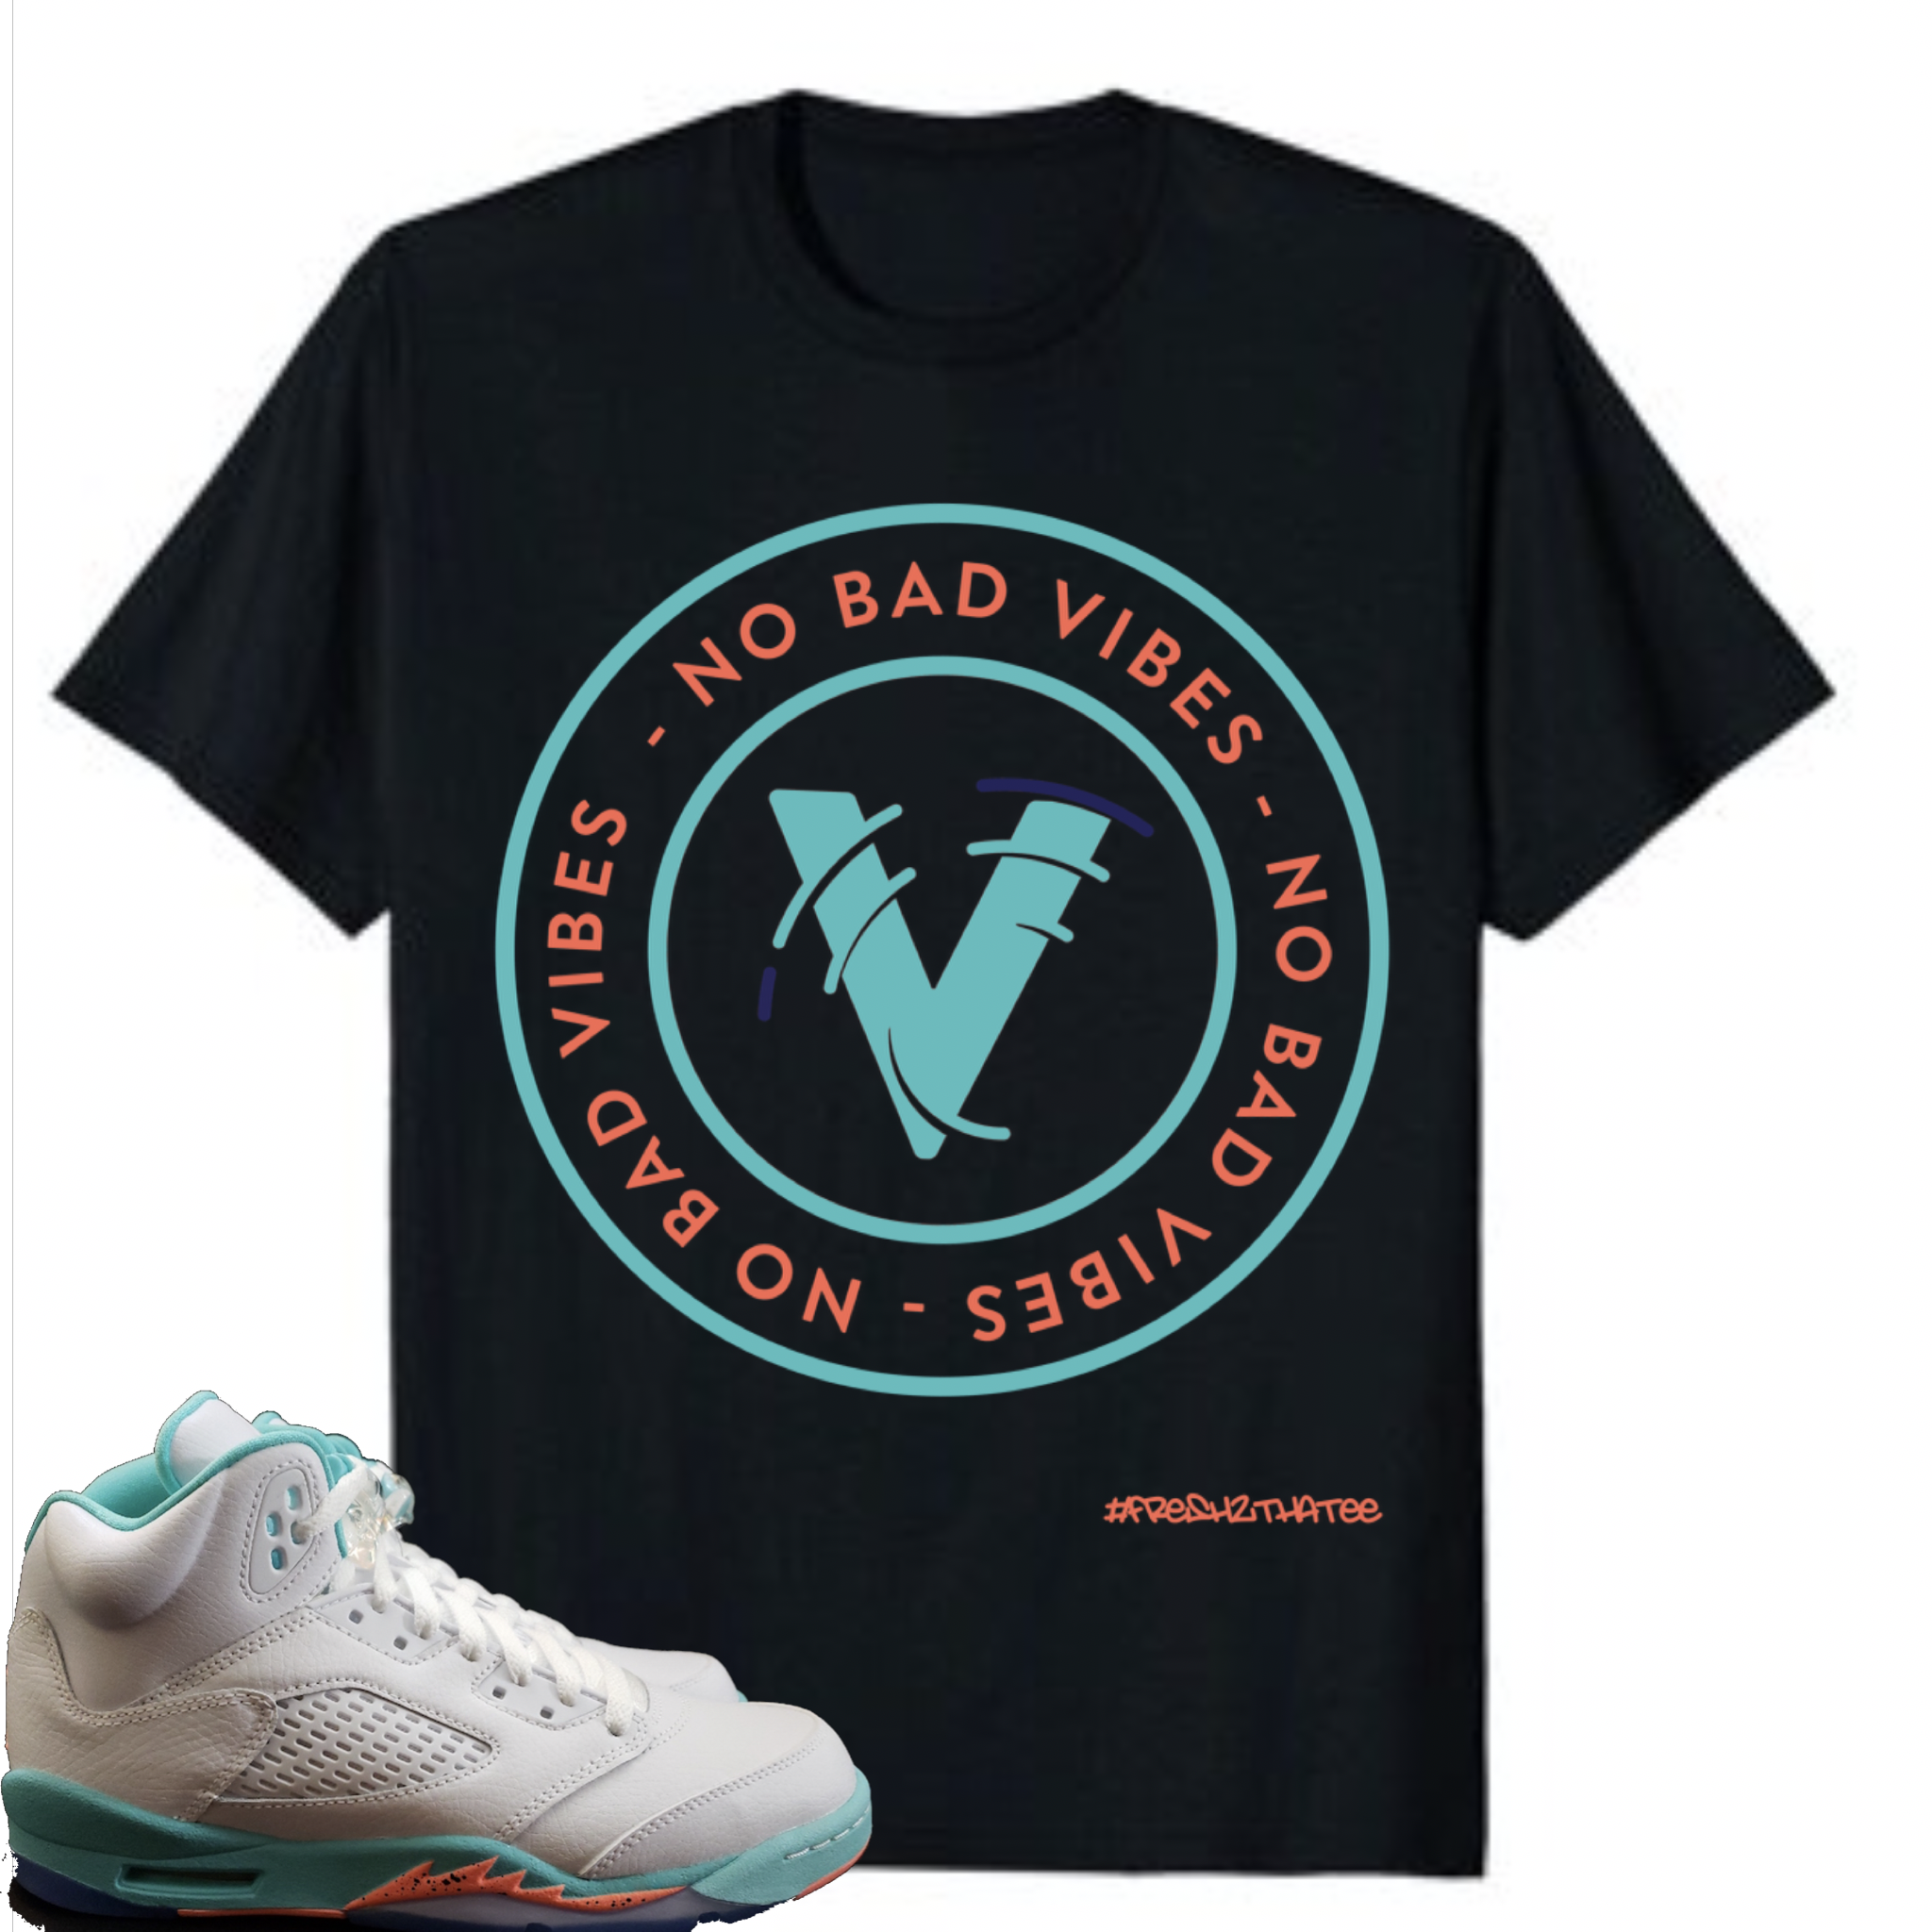 the latest a755c 030d9 Jordan 5 light aqua gs (no bad vibes ) t shirt available in ...